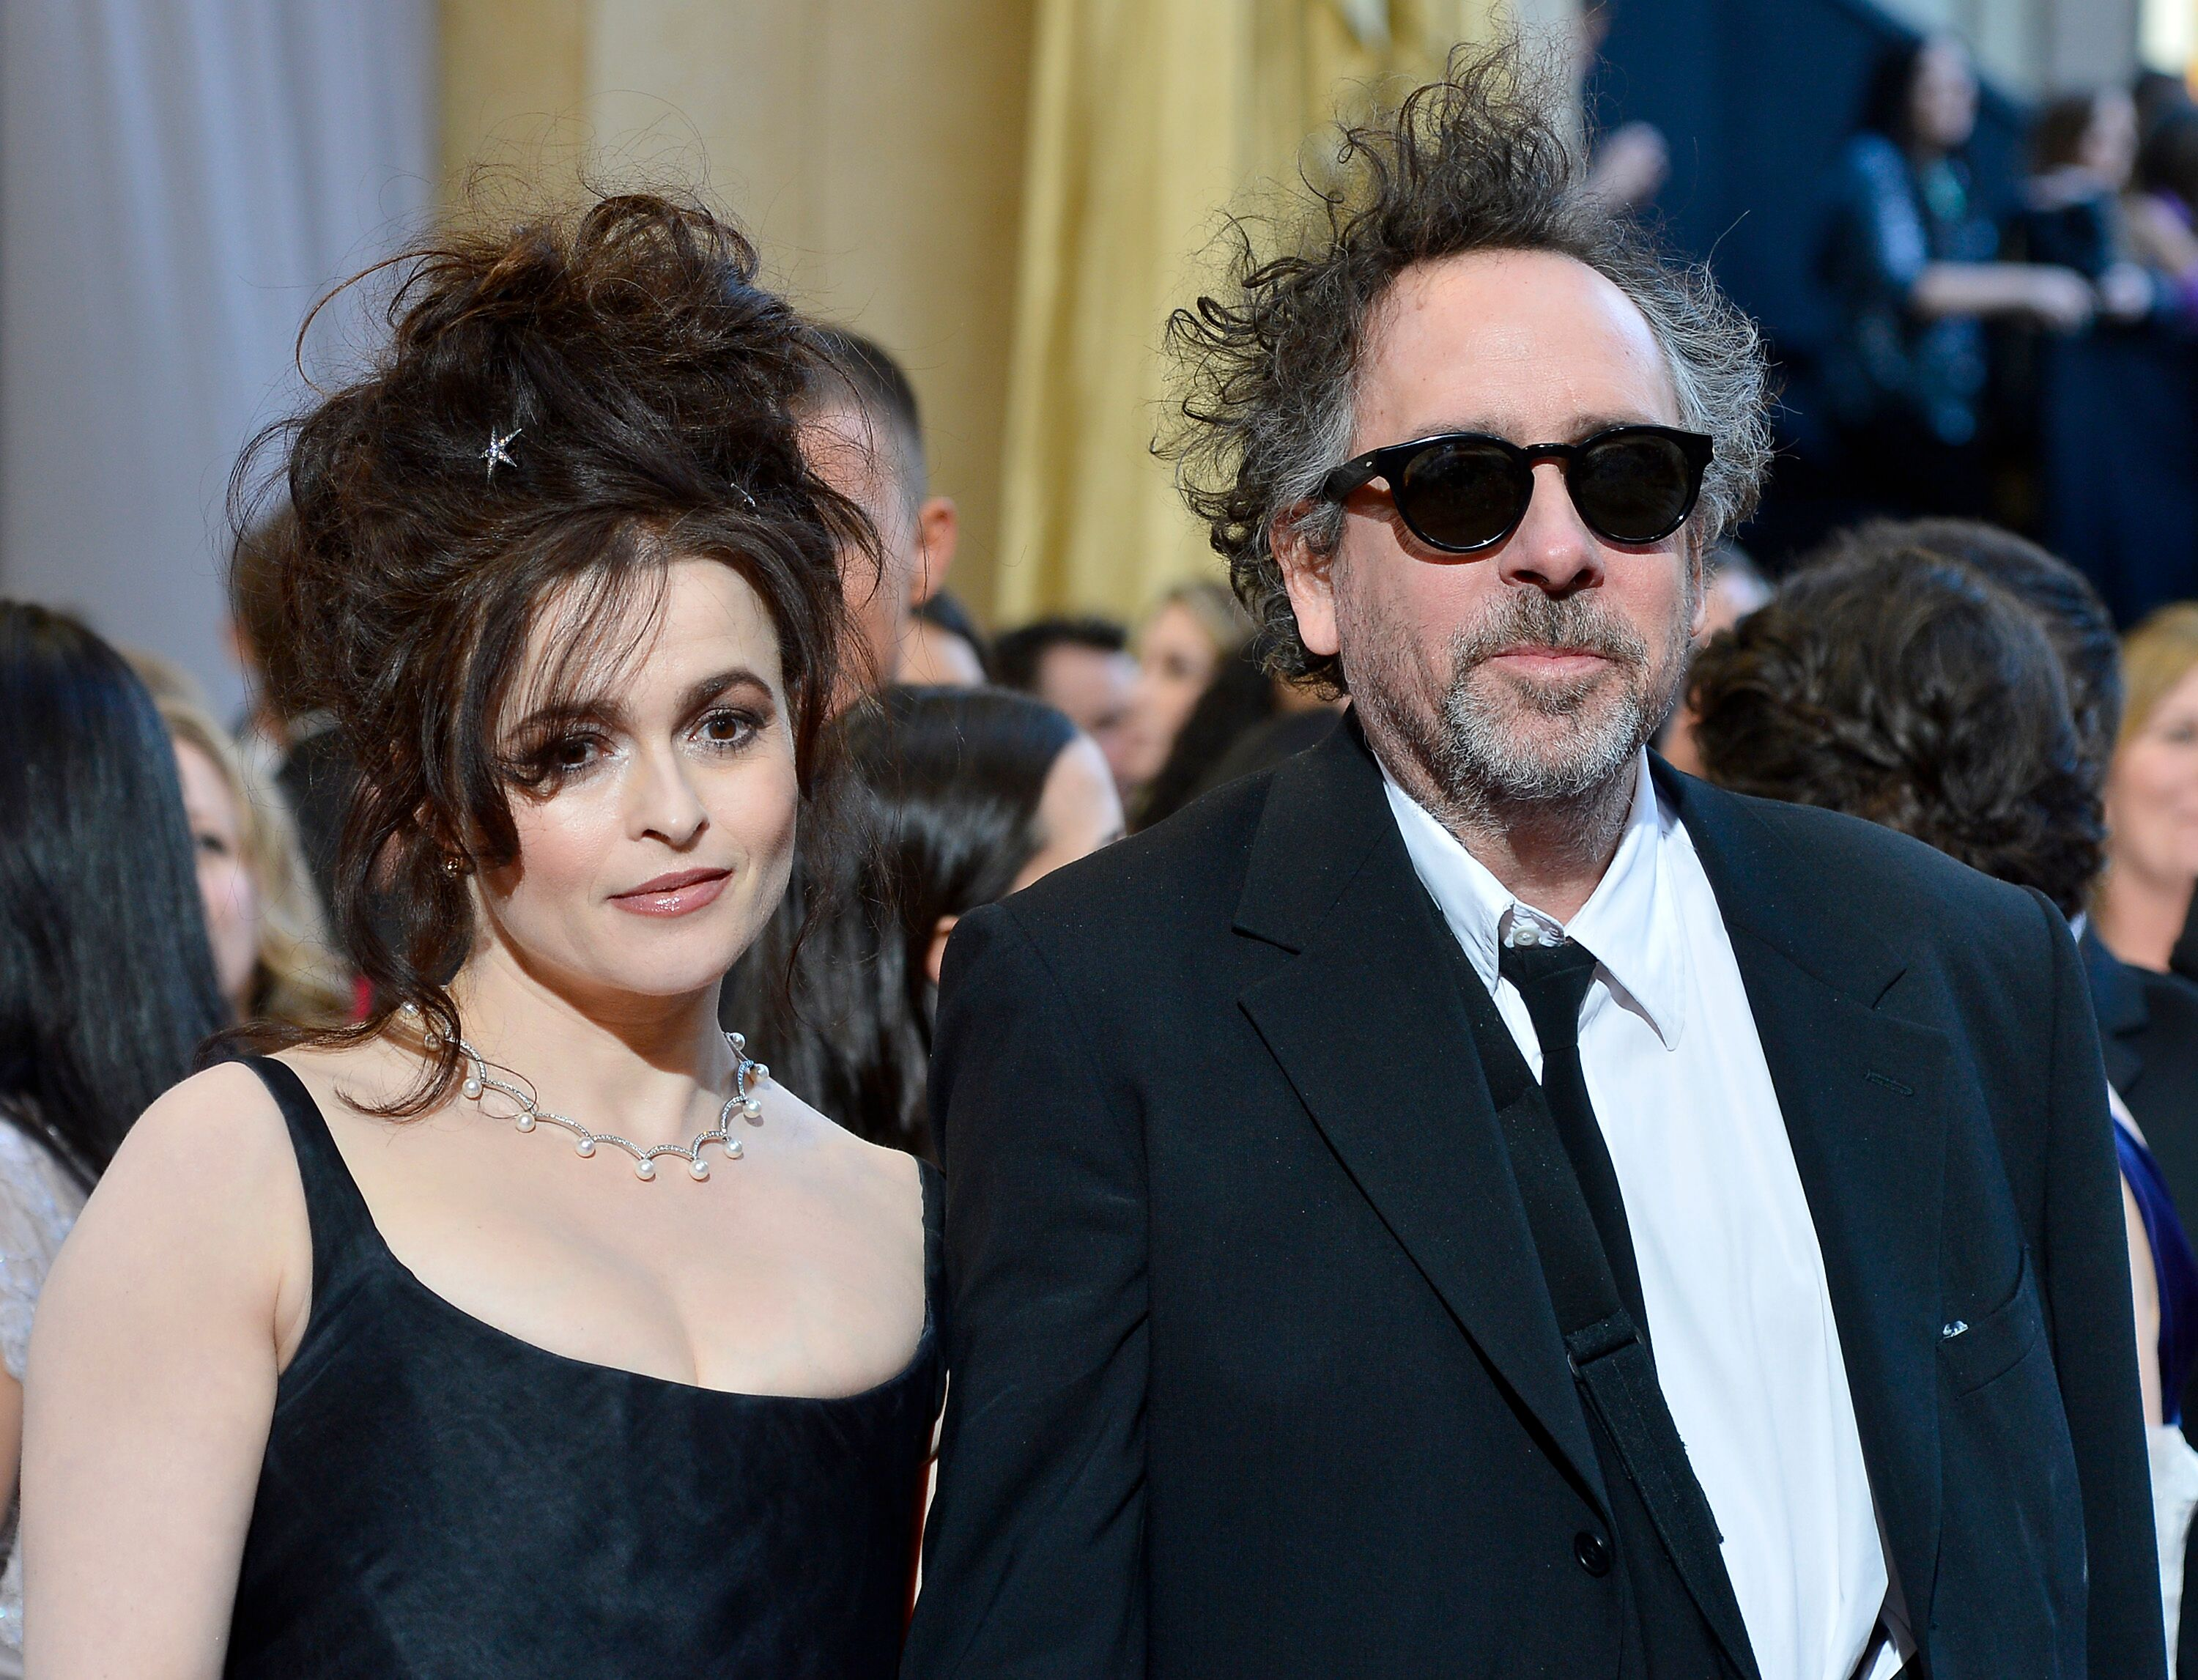 Actress Helena Bonham Carter and director Tim Burton at the Oscars on February 24, 2013. | Source: Getty Images